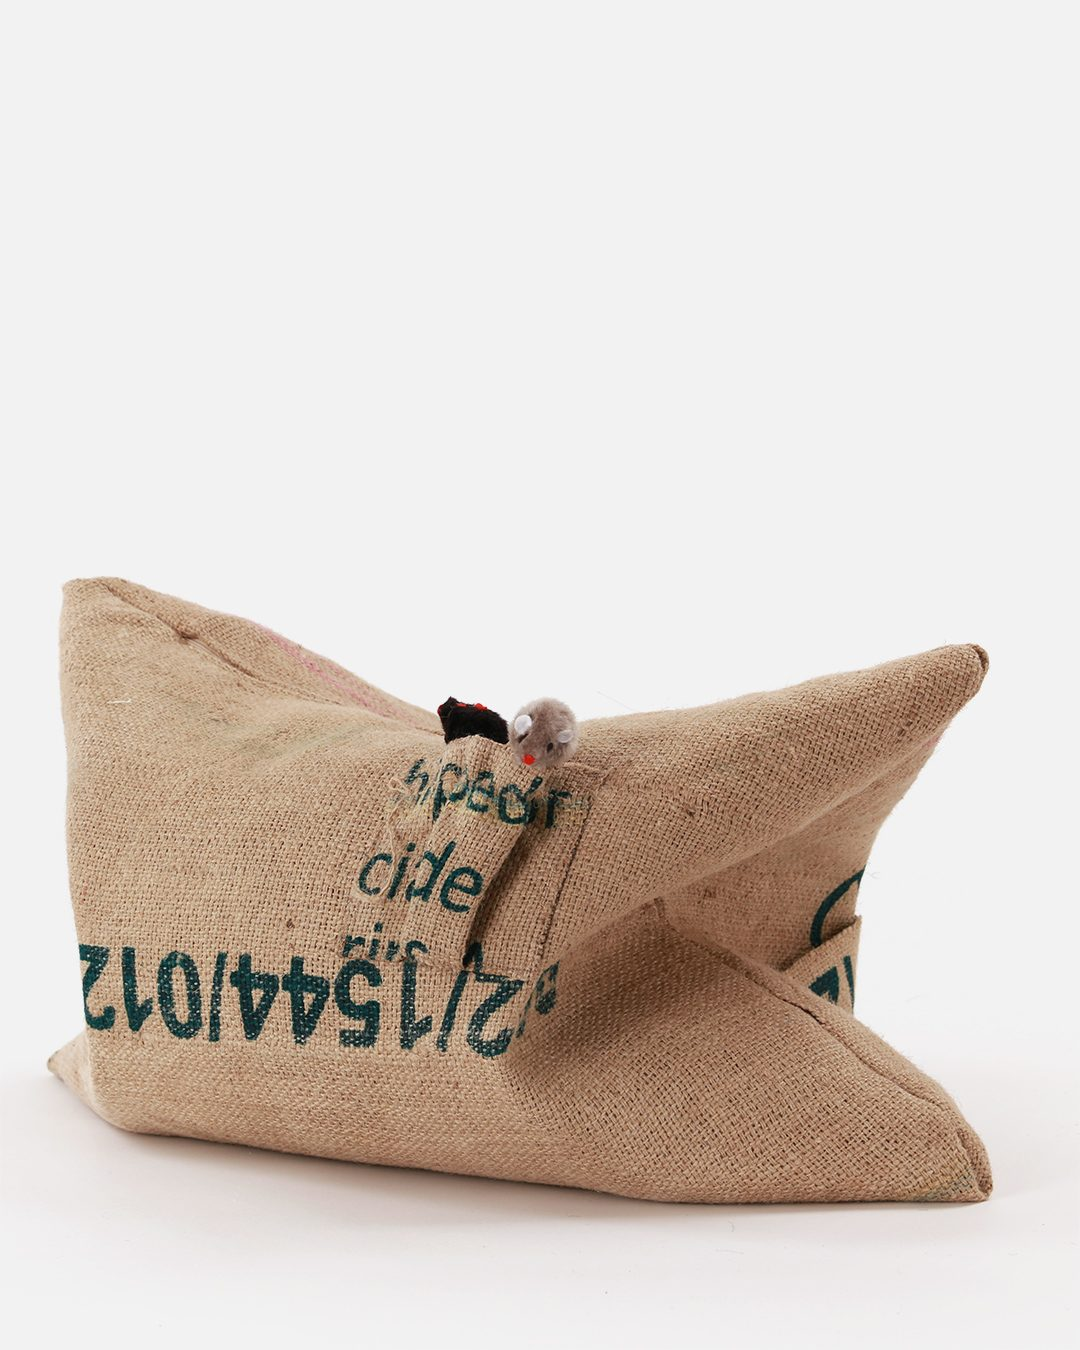 Pillow for cats to sleep and scratch RECYCLE-CAT made of recycled coffee-sacks with bag for toys.